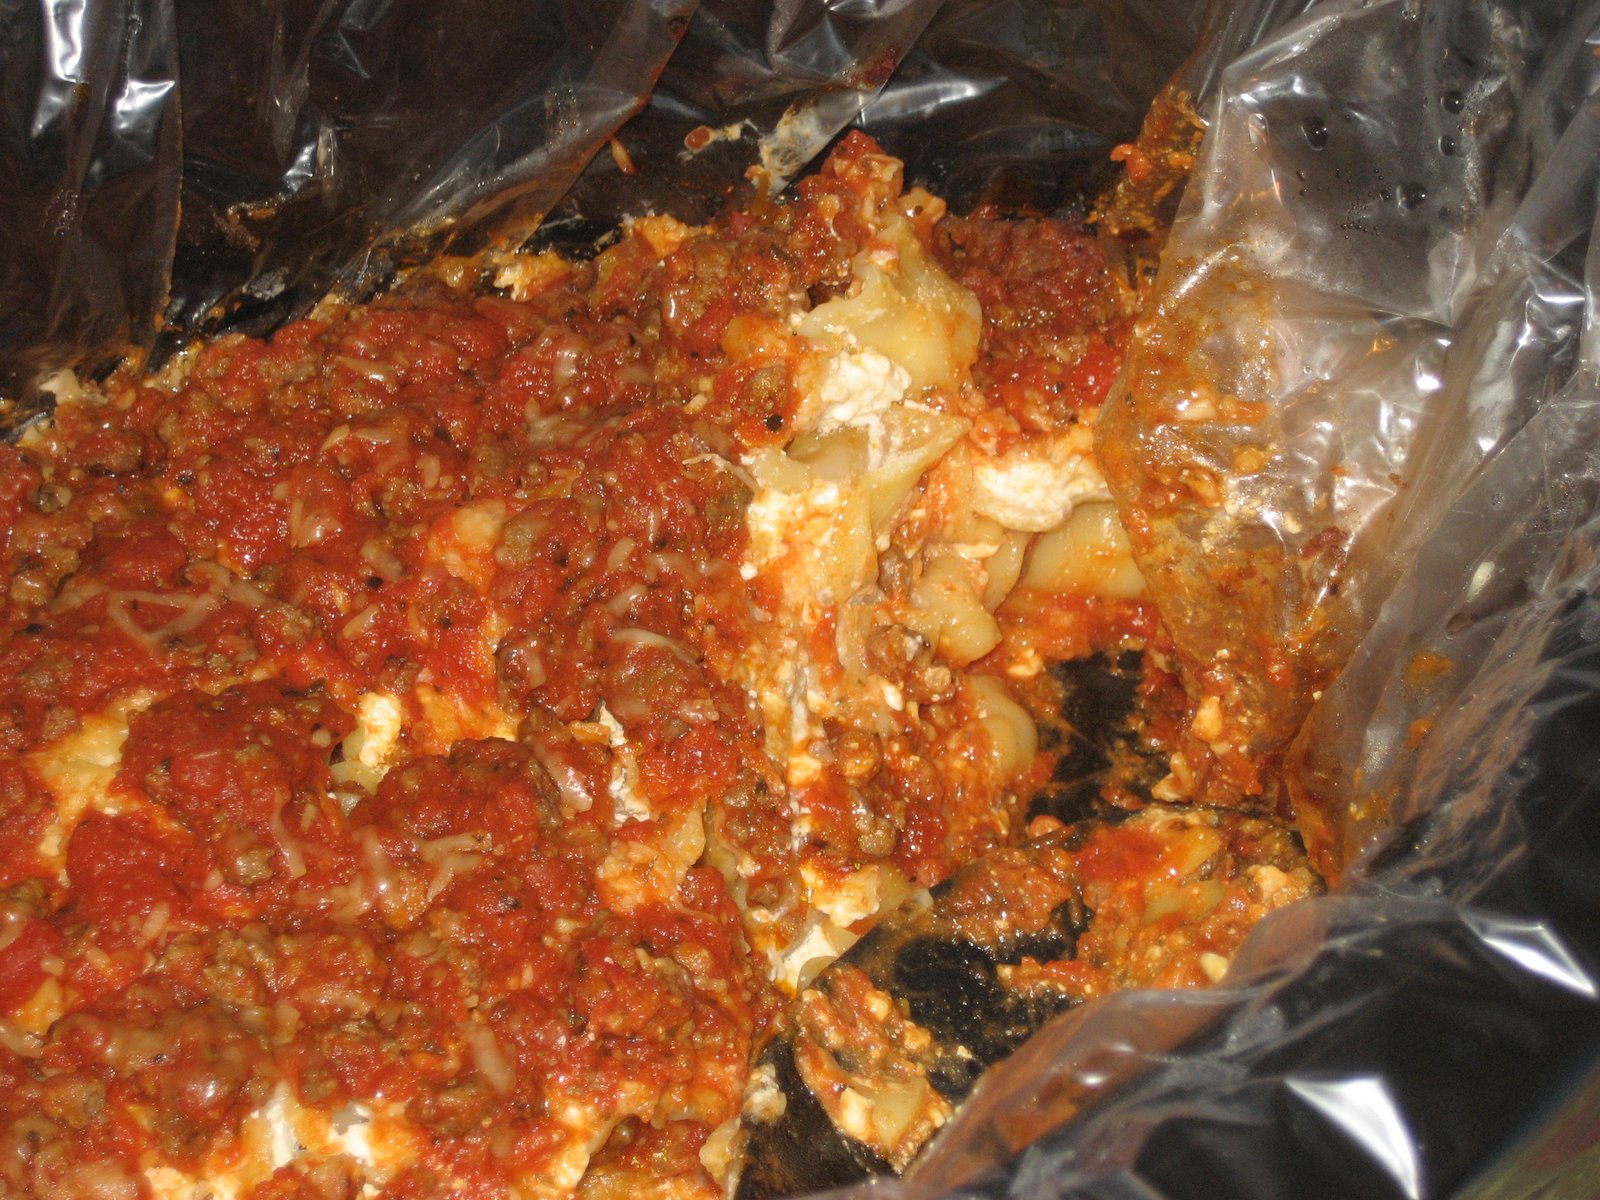 Crock Pot Lasagna | Tasty Kitchen: A Happy Recipe Community!